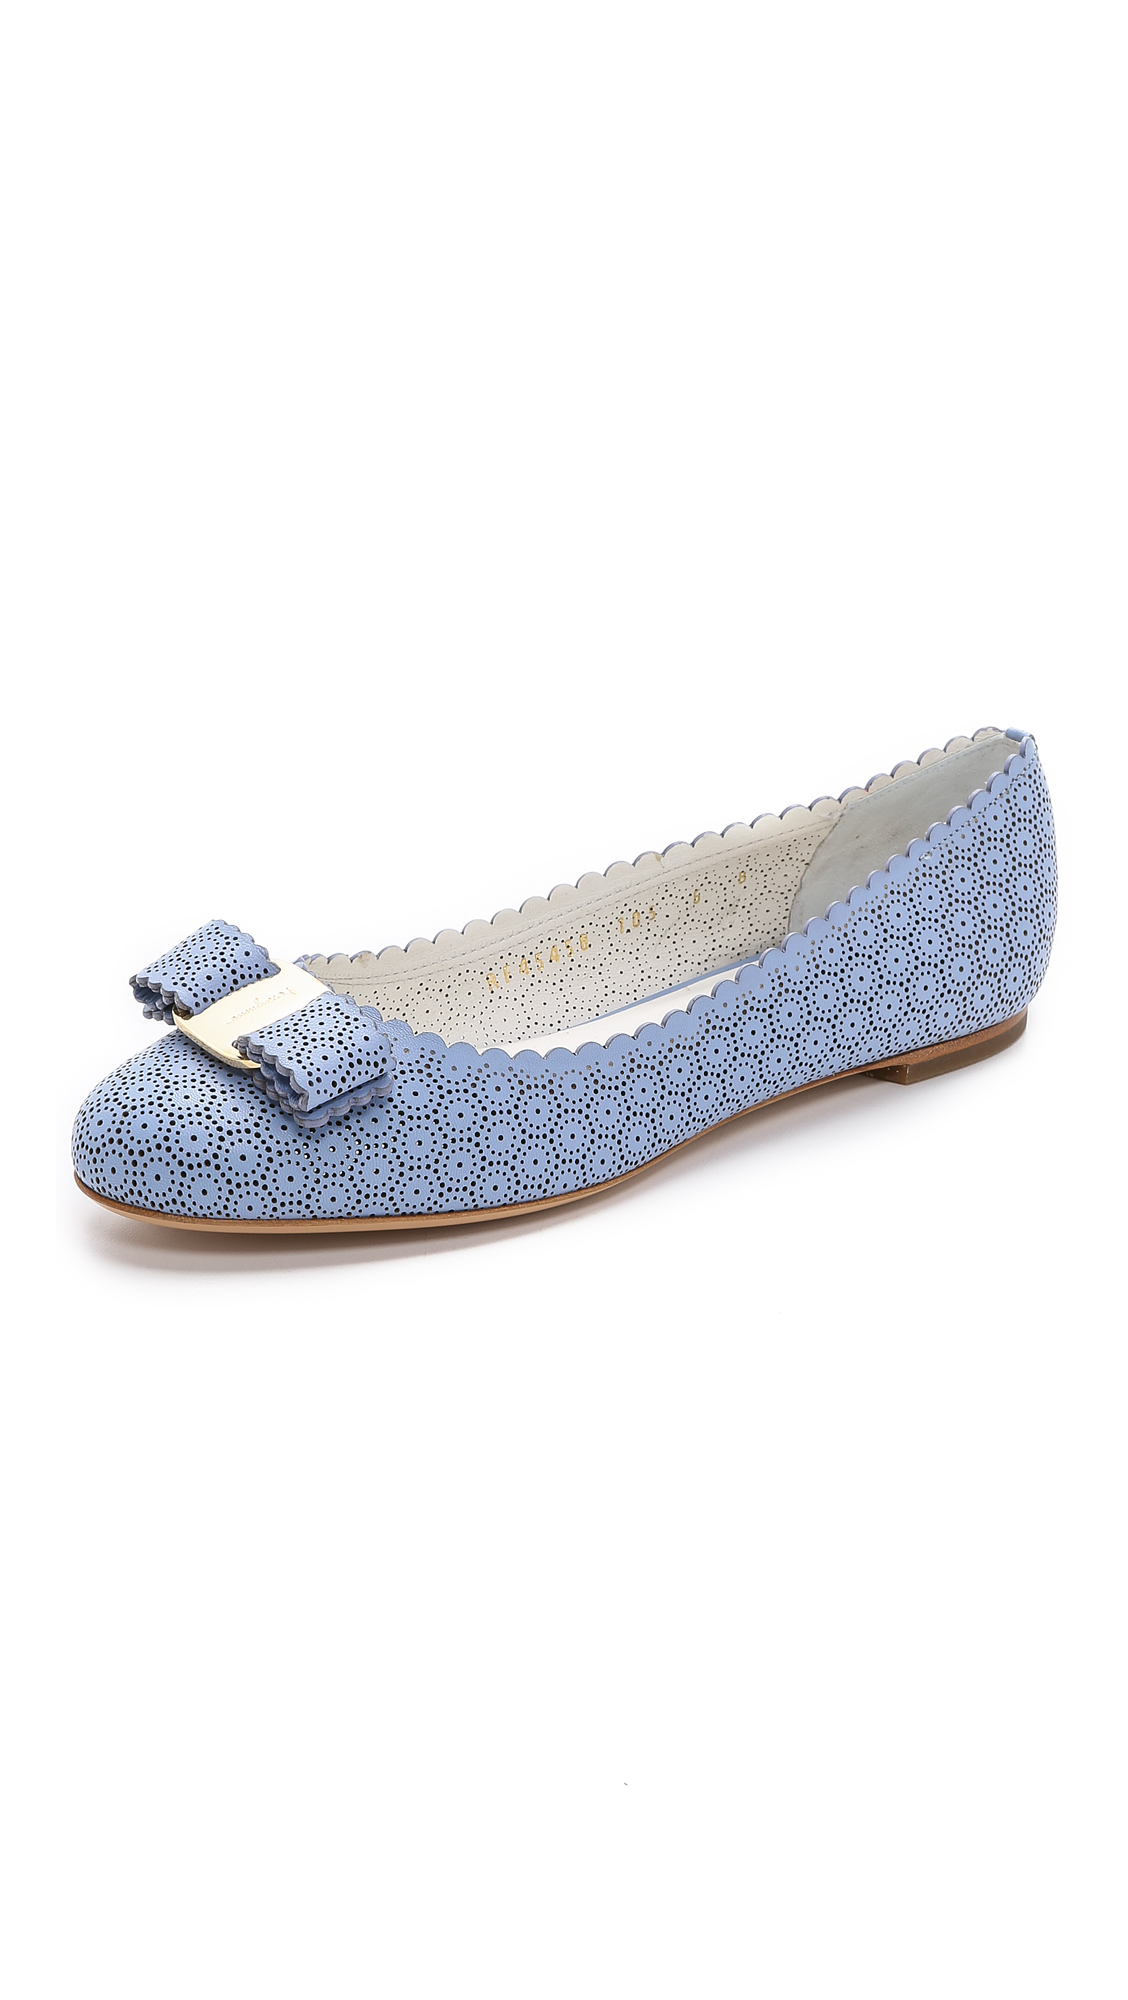 Salvatore Ferragamo woven Varina ballerina shoes with credit card for nice online GBzRd4yr